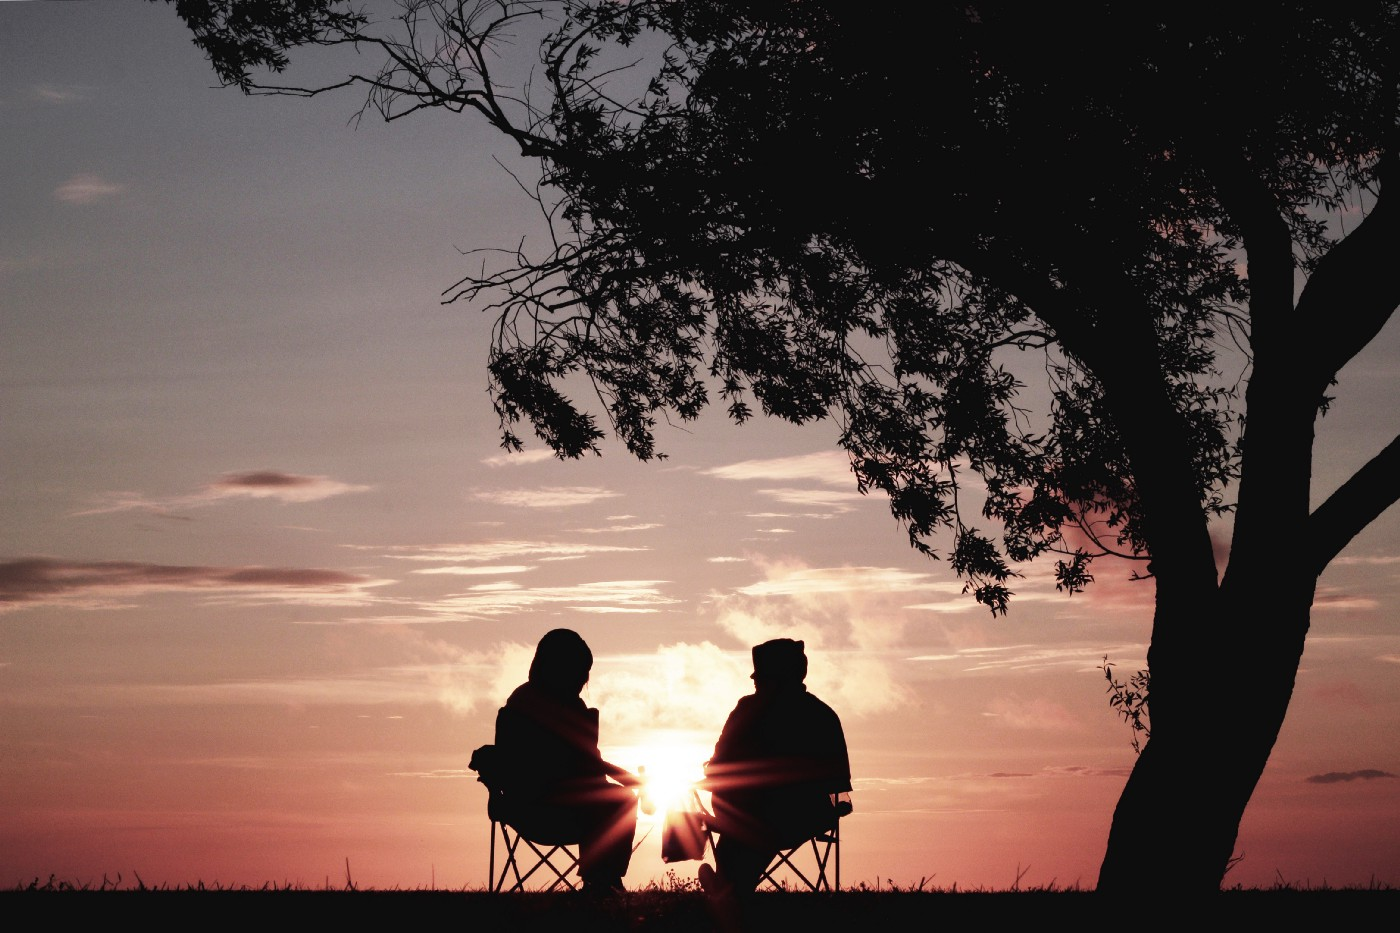 Two people sit under a tree, silhouetted against a sunset. There is a distance between them, with the sun showing between them as it lowers beyond the horizon.